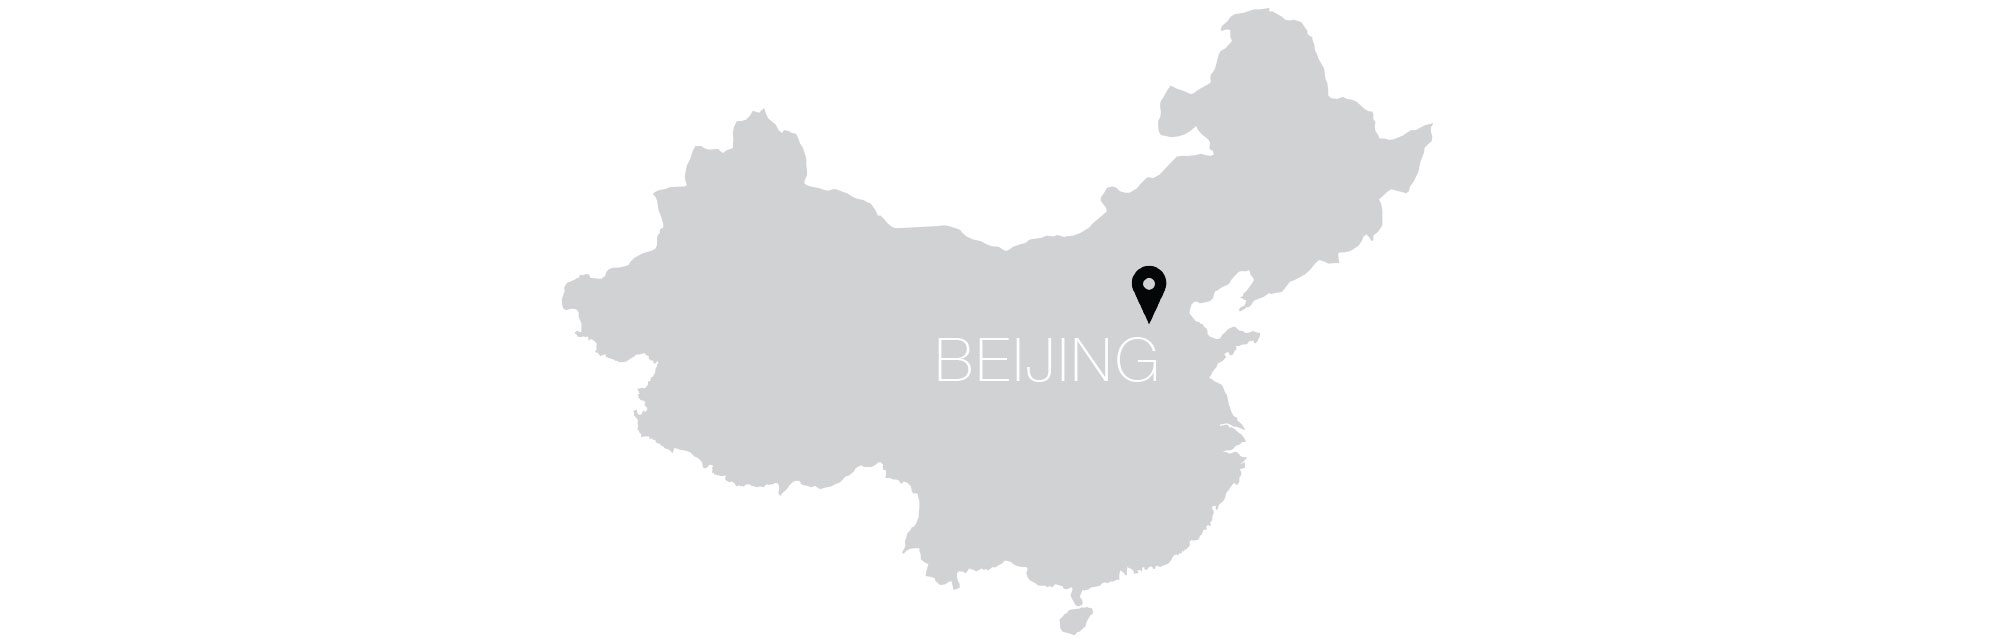 Bejing Map Text